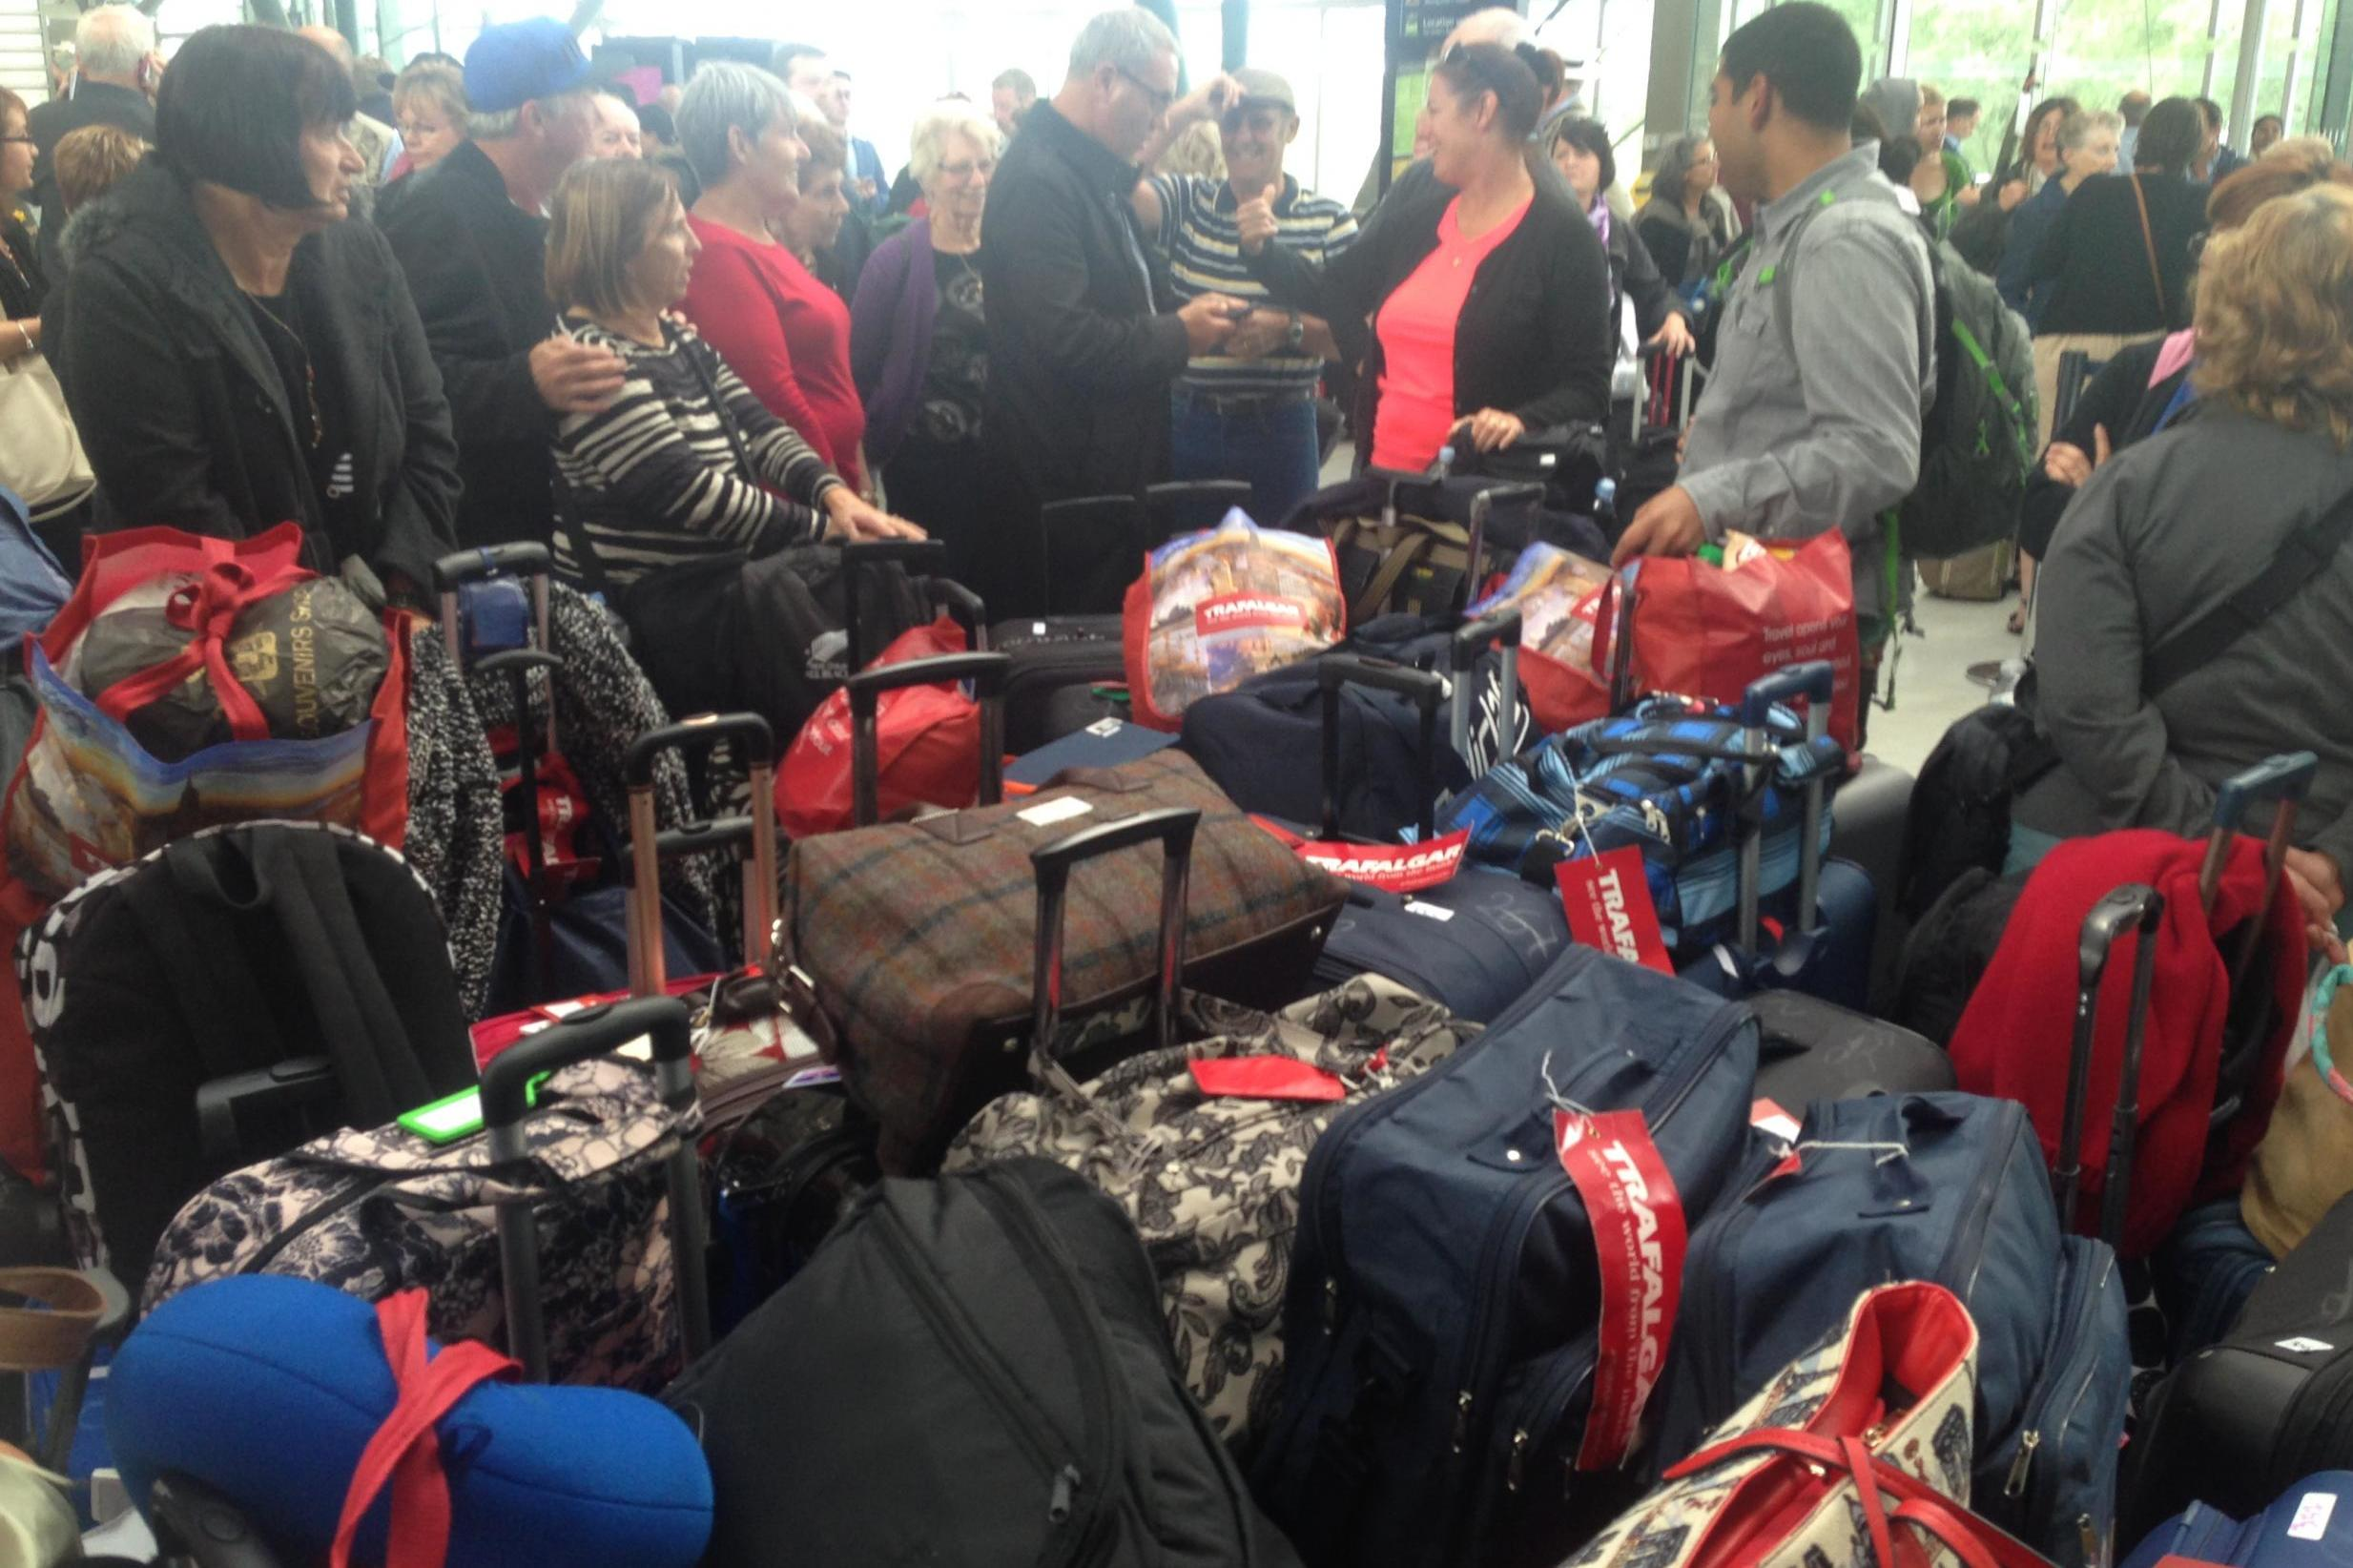 Travel chaos expected in France as national strike shuts down rail, road and air links